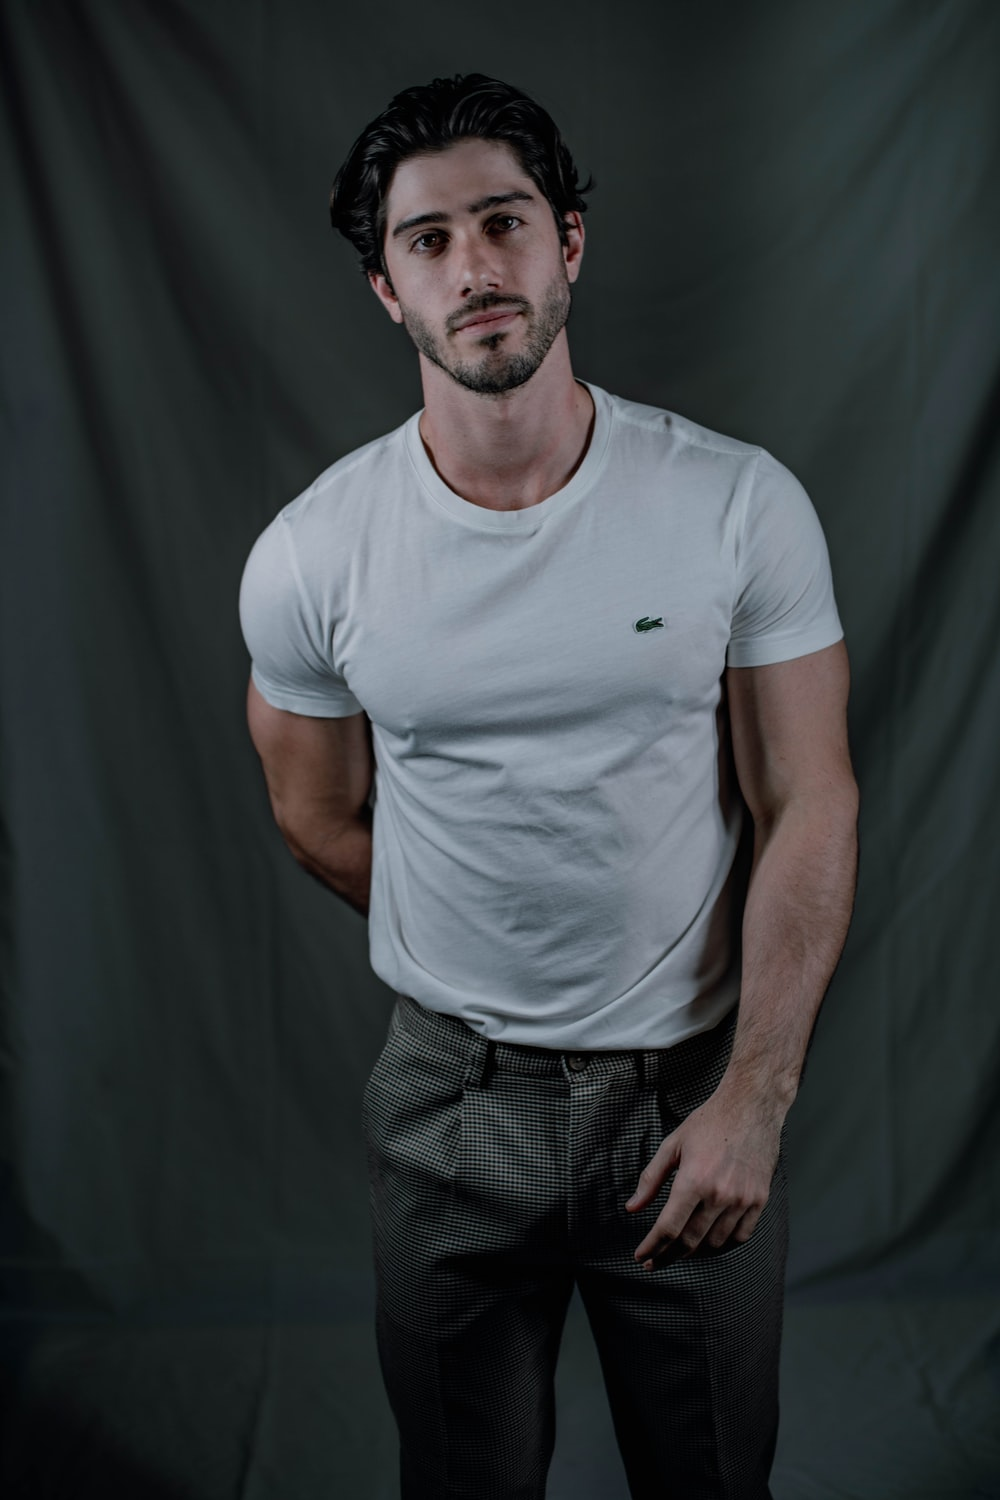 man in white crew neck t-shirt and black pants